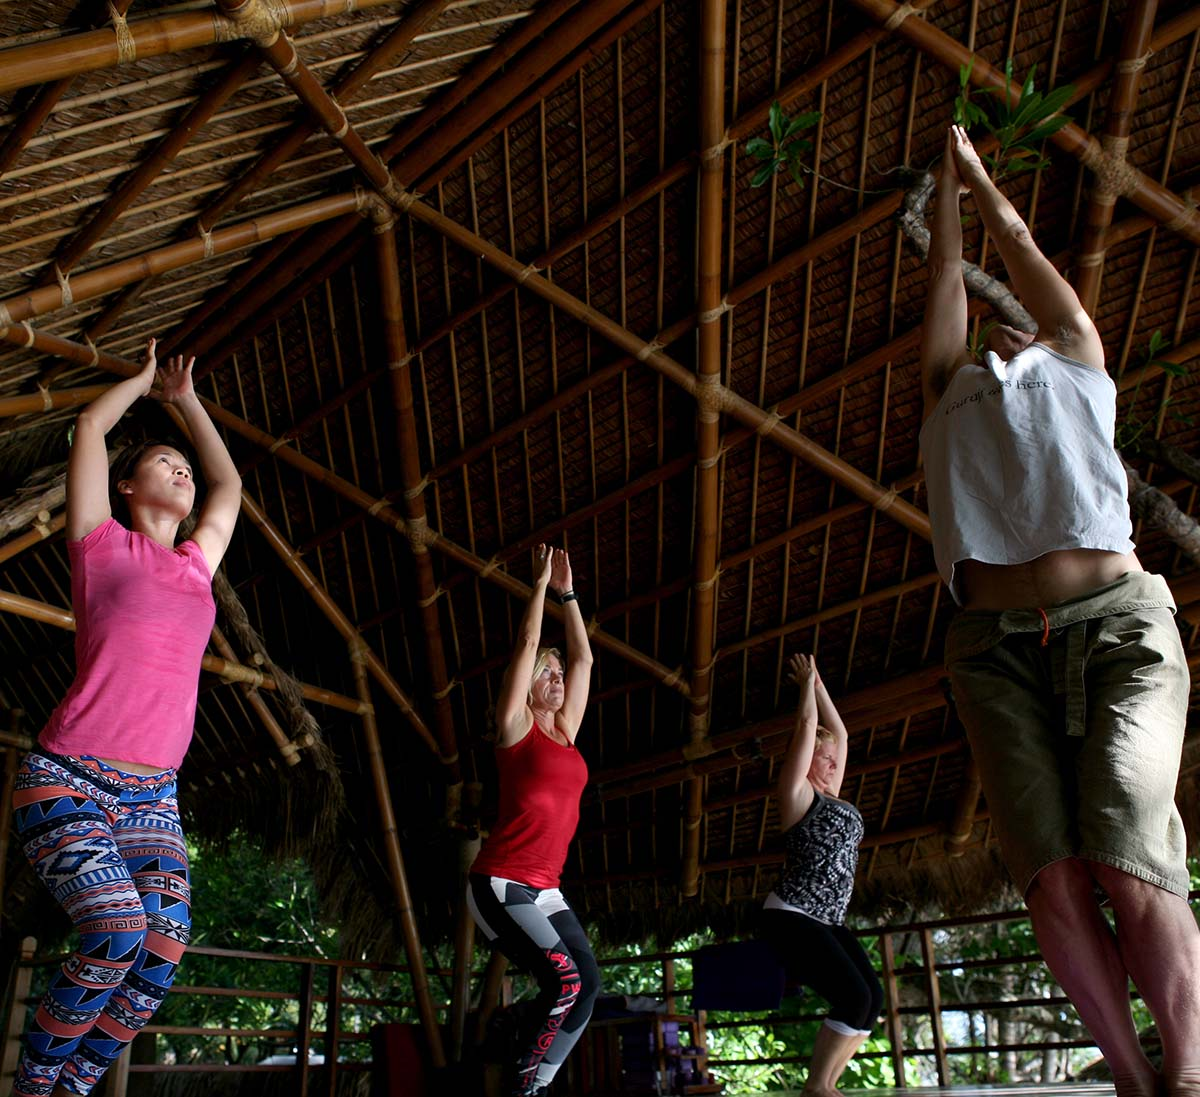 Rylyn Ge, Ulrika Kroon and Rae Collins in a yoga class with Tim Feldmann at Atmosphere Resort Philippines